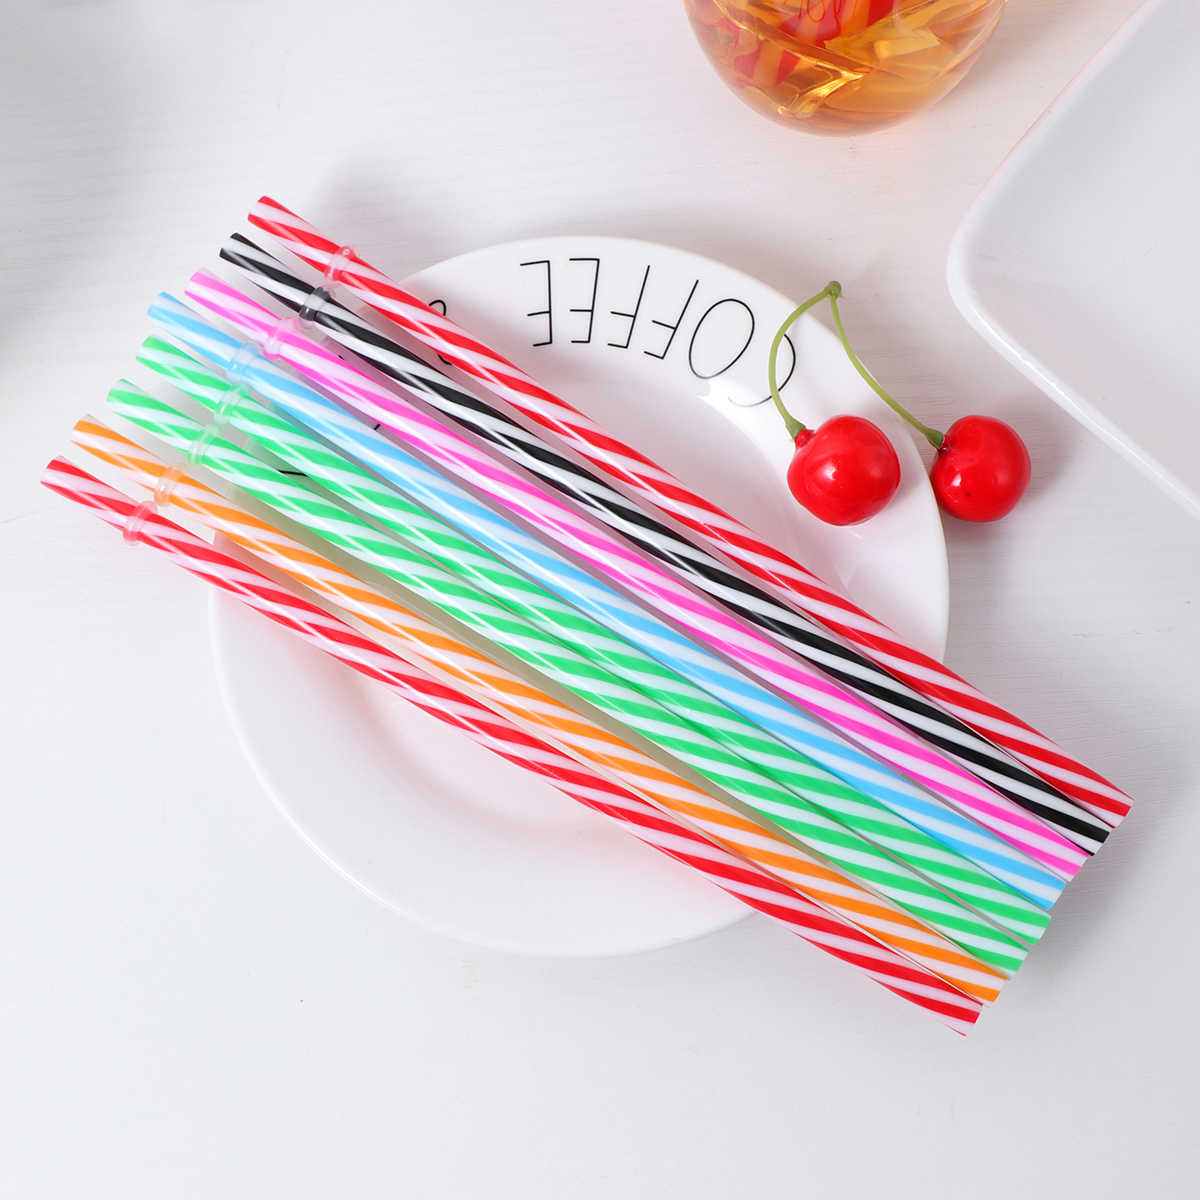 25PCS Threaded Straws Reusable Plastic Two Colors Party Supplies Drinking Straws for Wedding Birthday Christmas Festival